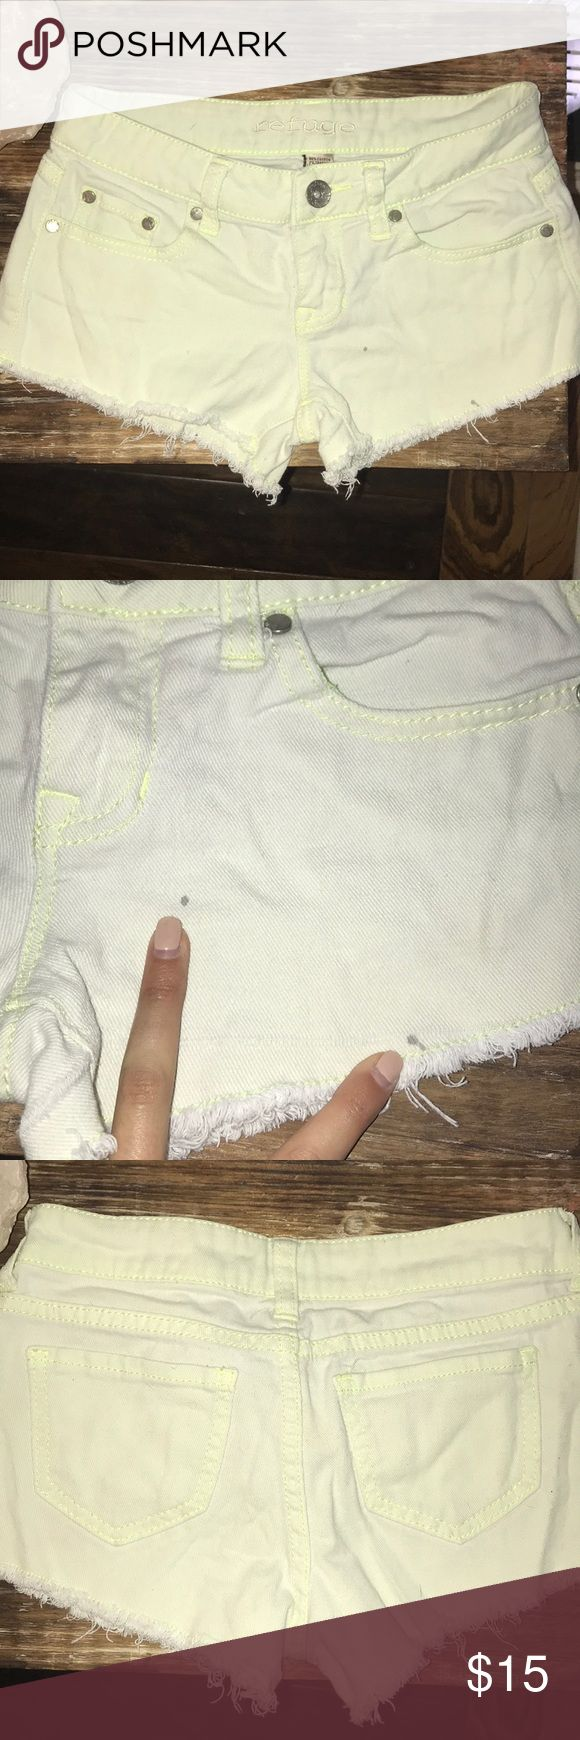 Neon yellow shorts Neon yellow shorts. Worn a couple times, has 2 minor flaws. They are 2 small paint splatter spots (made the mistake of painting in these.. see pics!) but are barely noticeable when wearing. Still cute shorts!! refuge Shorts